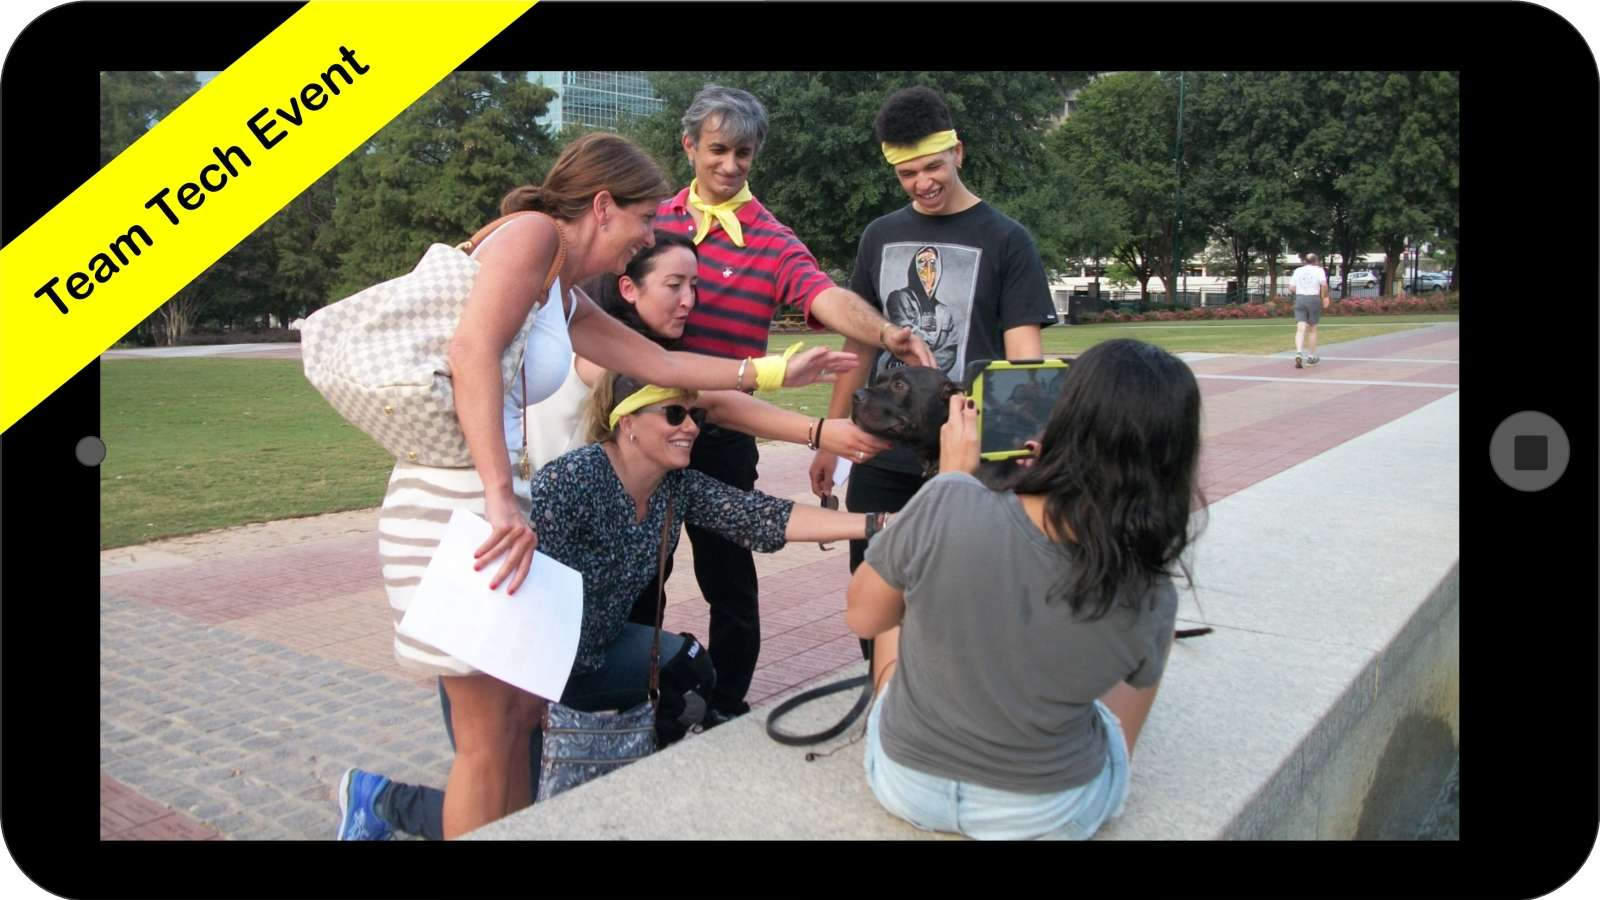 corporate scavenger hunt on mobile device. Team completes challenge with dog